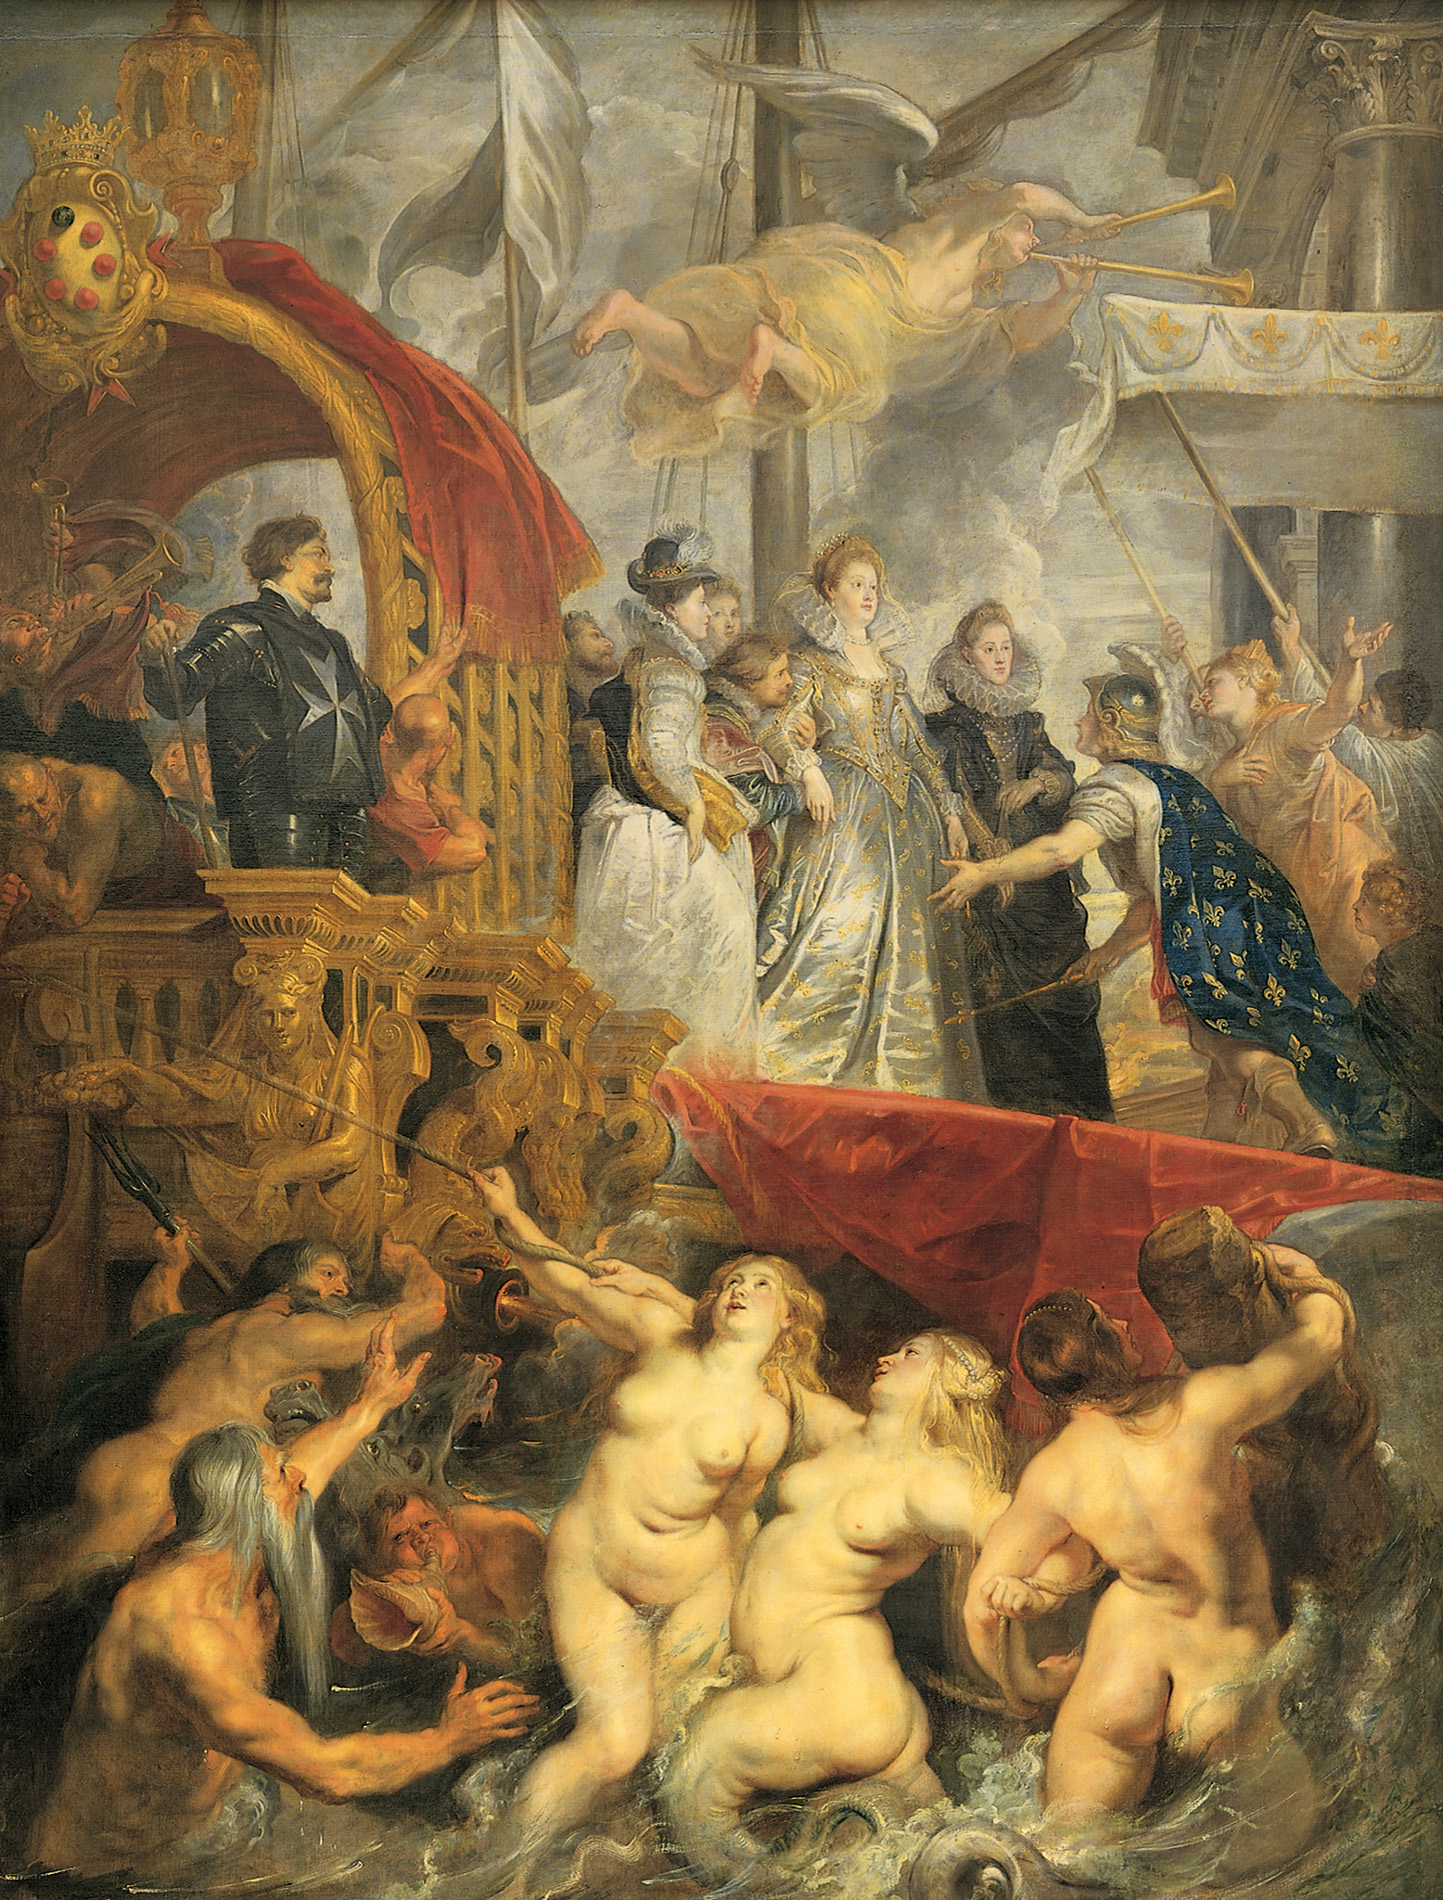 Peter Paul Rubens (1577 – 1640)  The Landing of Marie de' Médici at Marseilles  Oil on canvas, 1623-1625  155 x 116 1/8 inches (394 x 295 cm)  Musée du Louvre, Paris, France